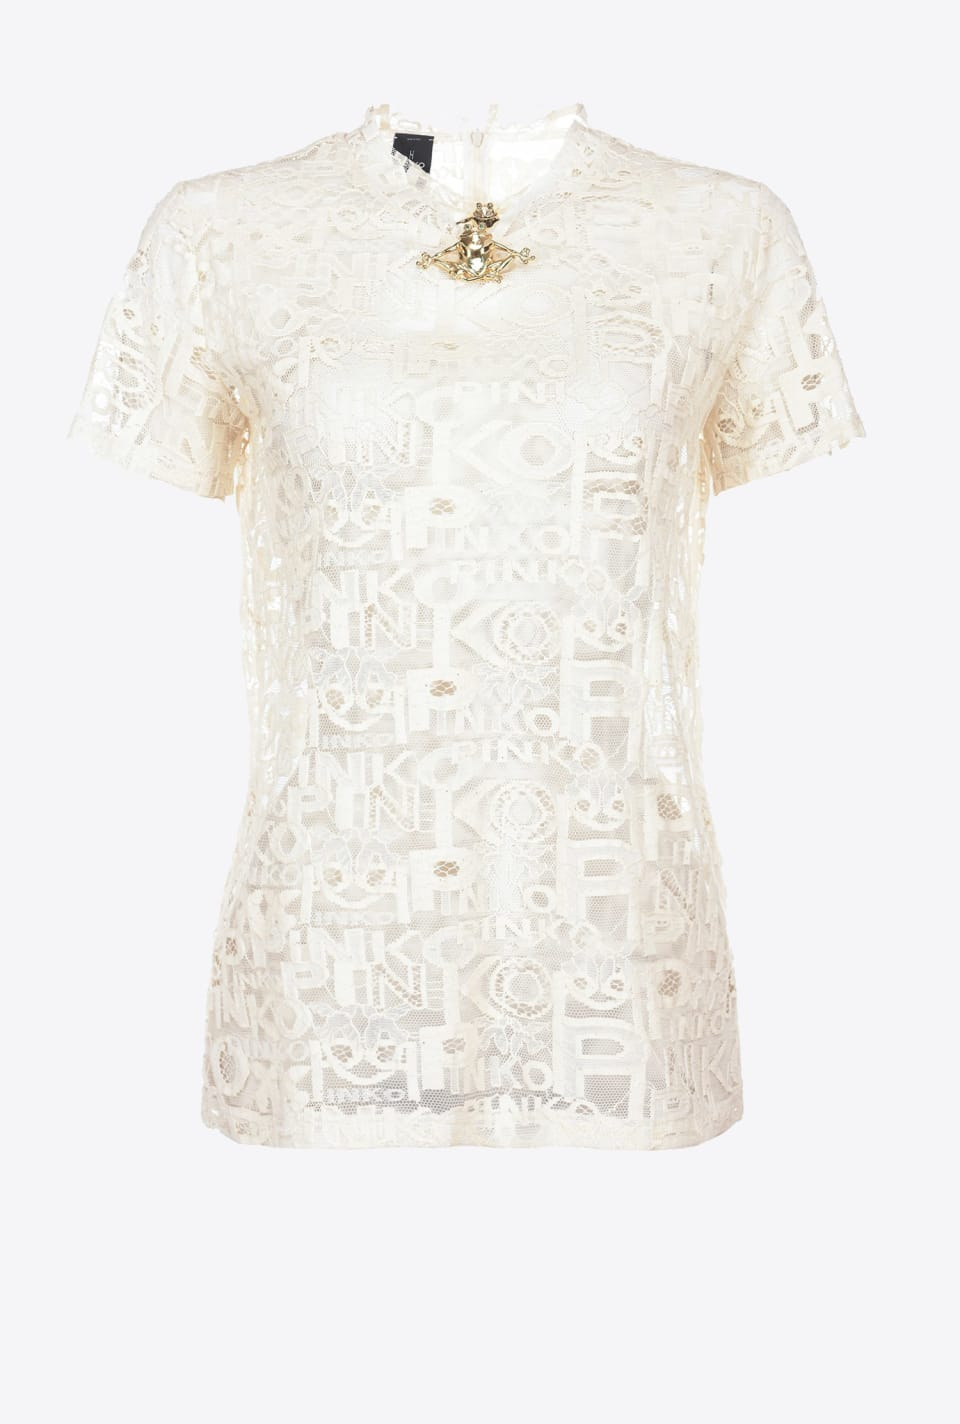 Top in logoed lace with frog brooch - Pinko